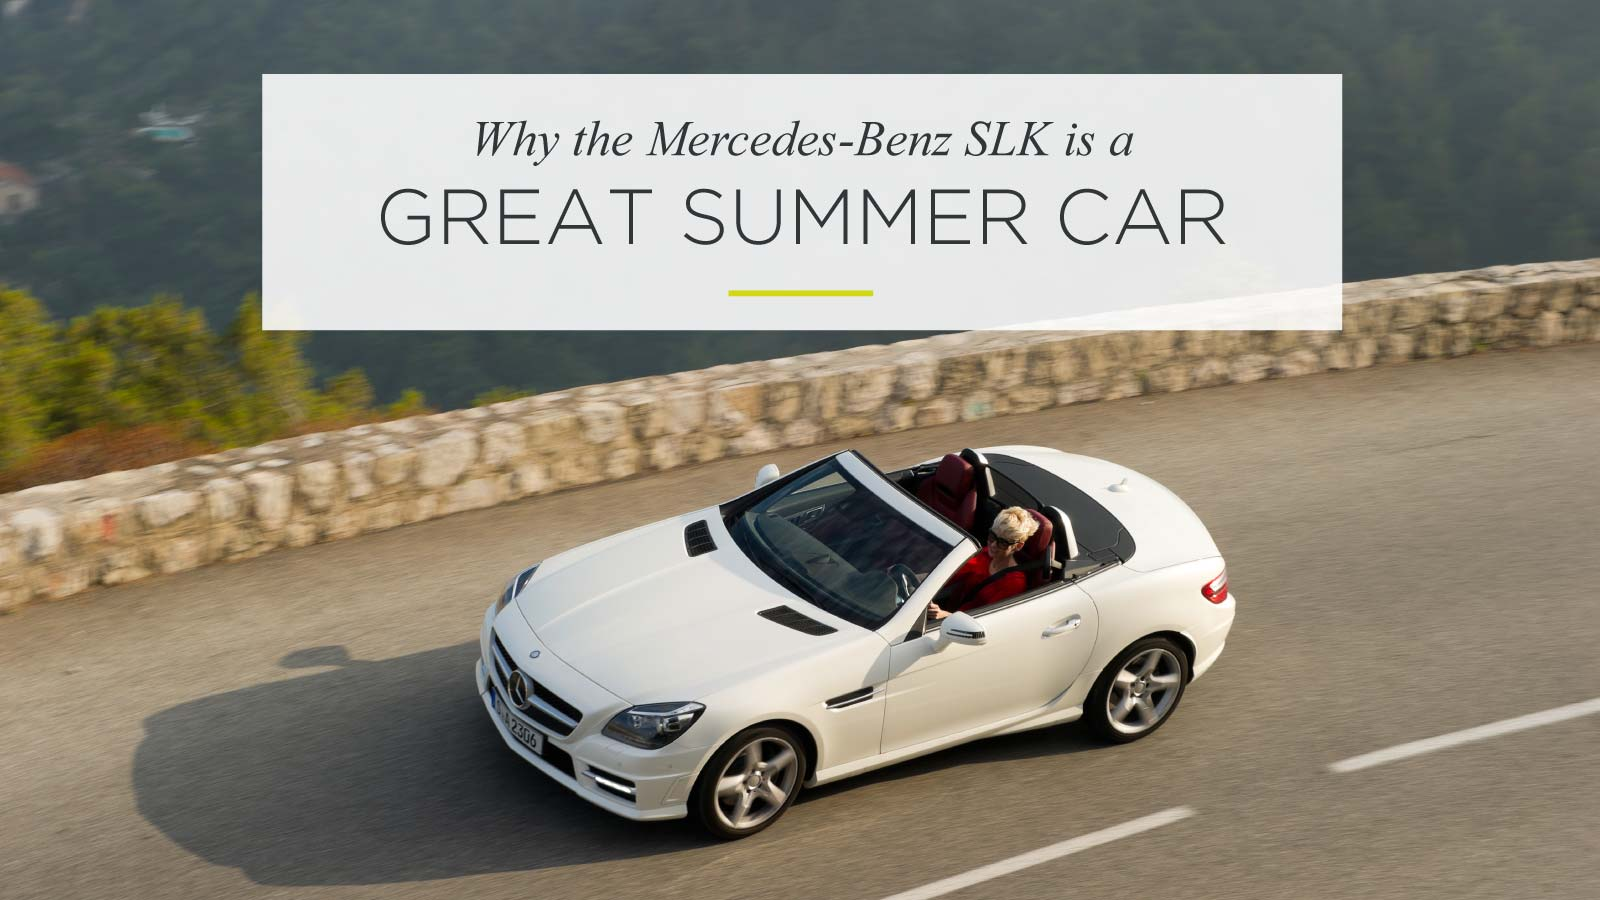 Why the Mercedes-Benz SLK is a Great Summer Car